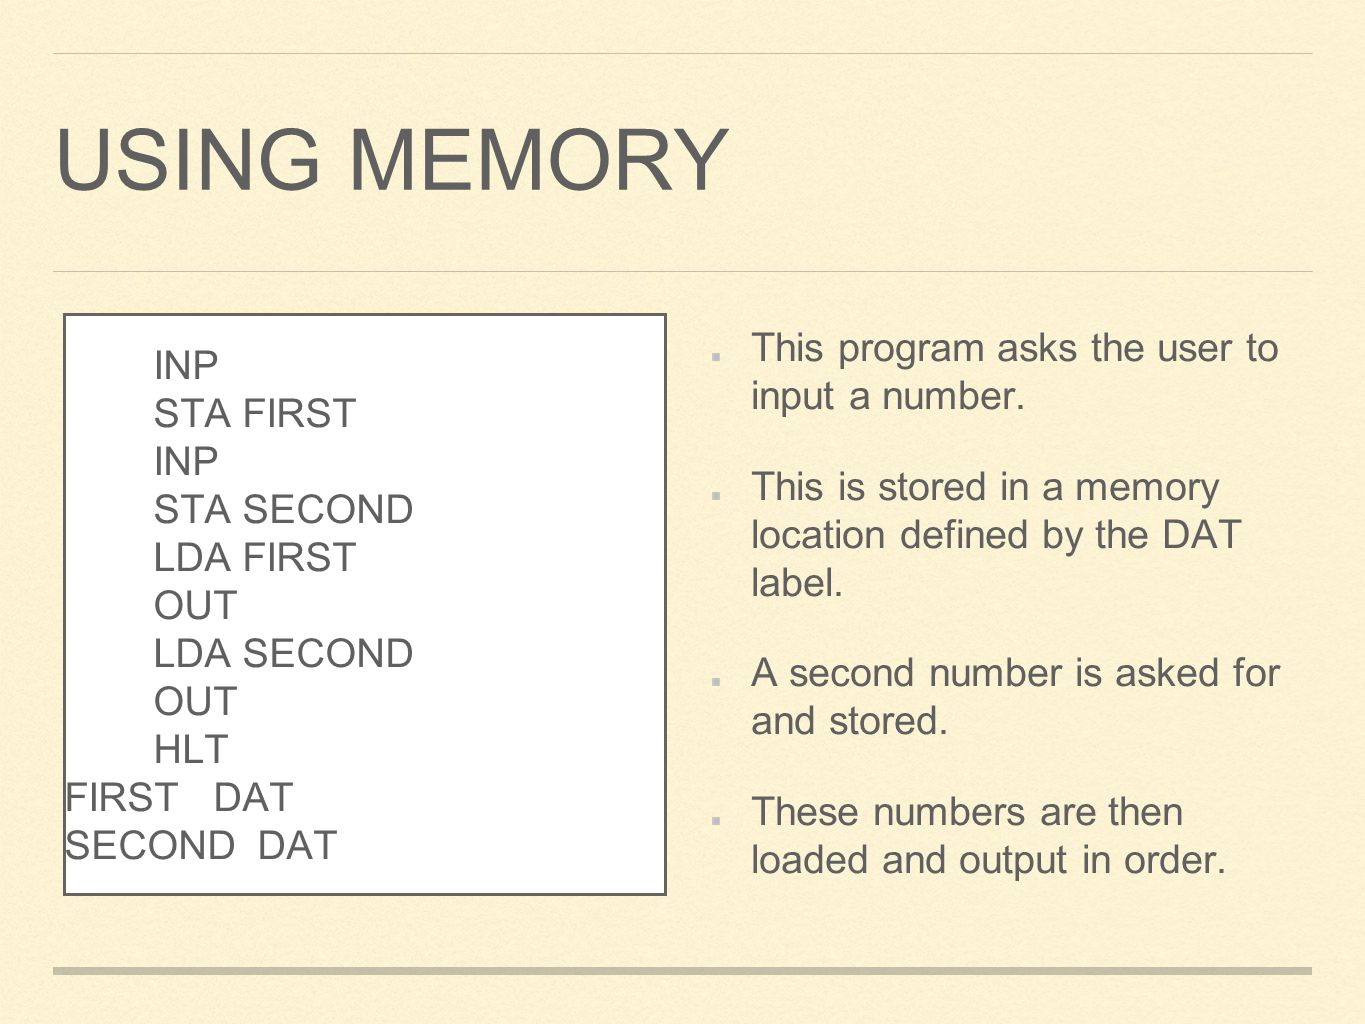 USING MEMORY This program asks the user to input a number. This is stored in a memory location defined by the DAT label. A second number is asked for